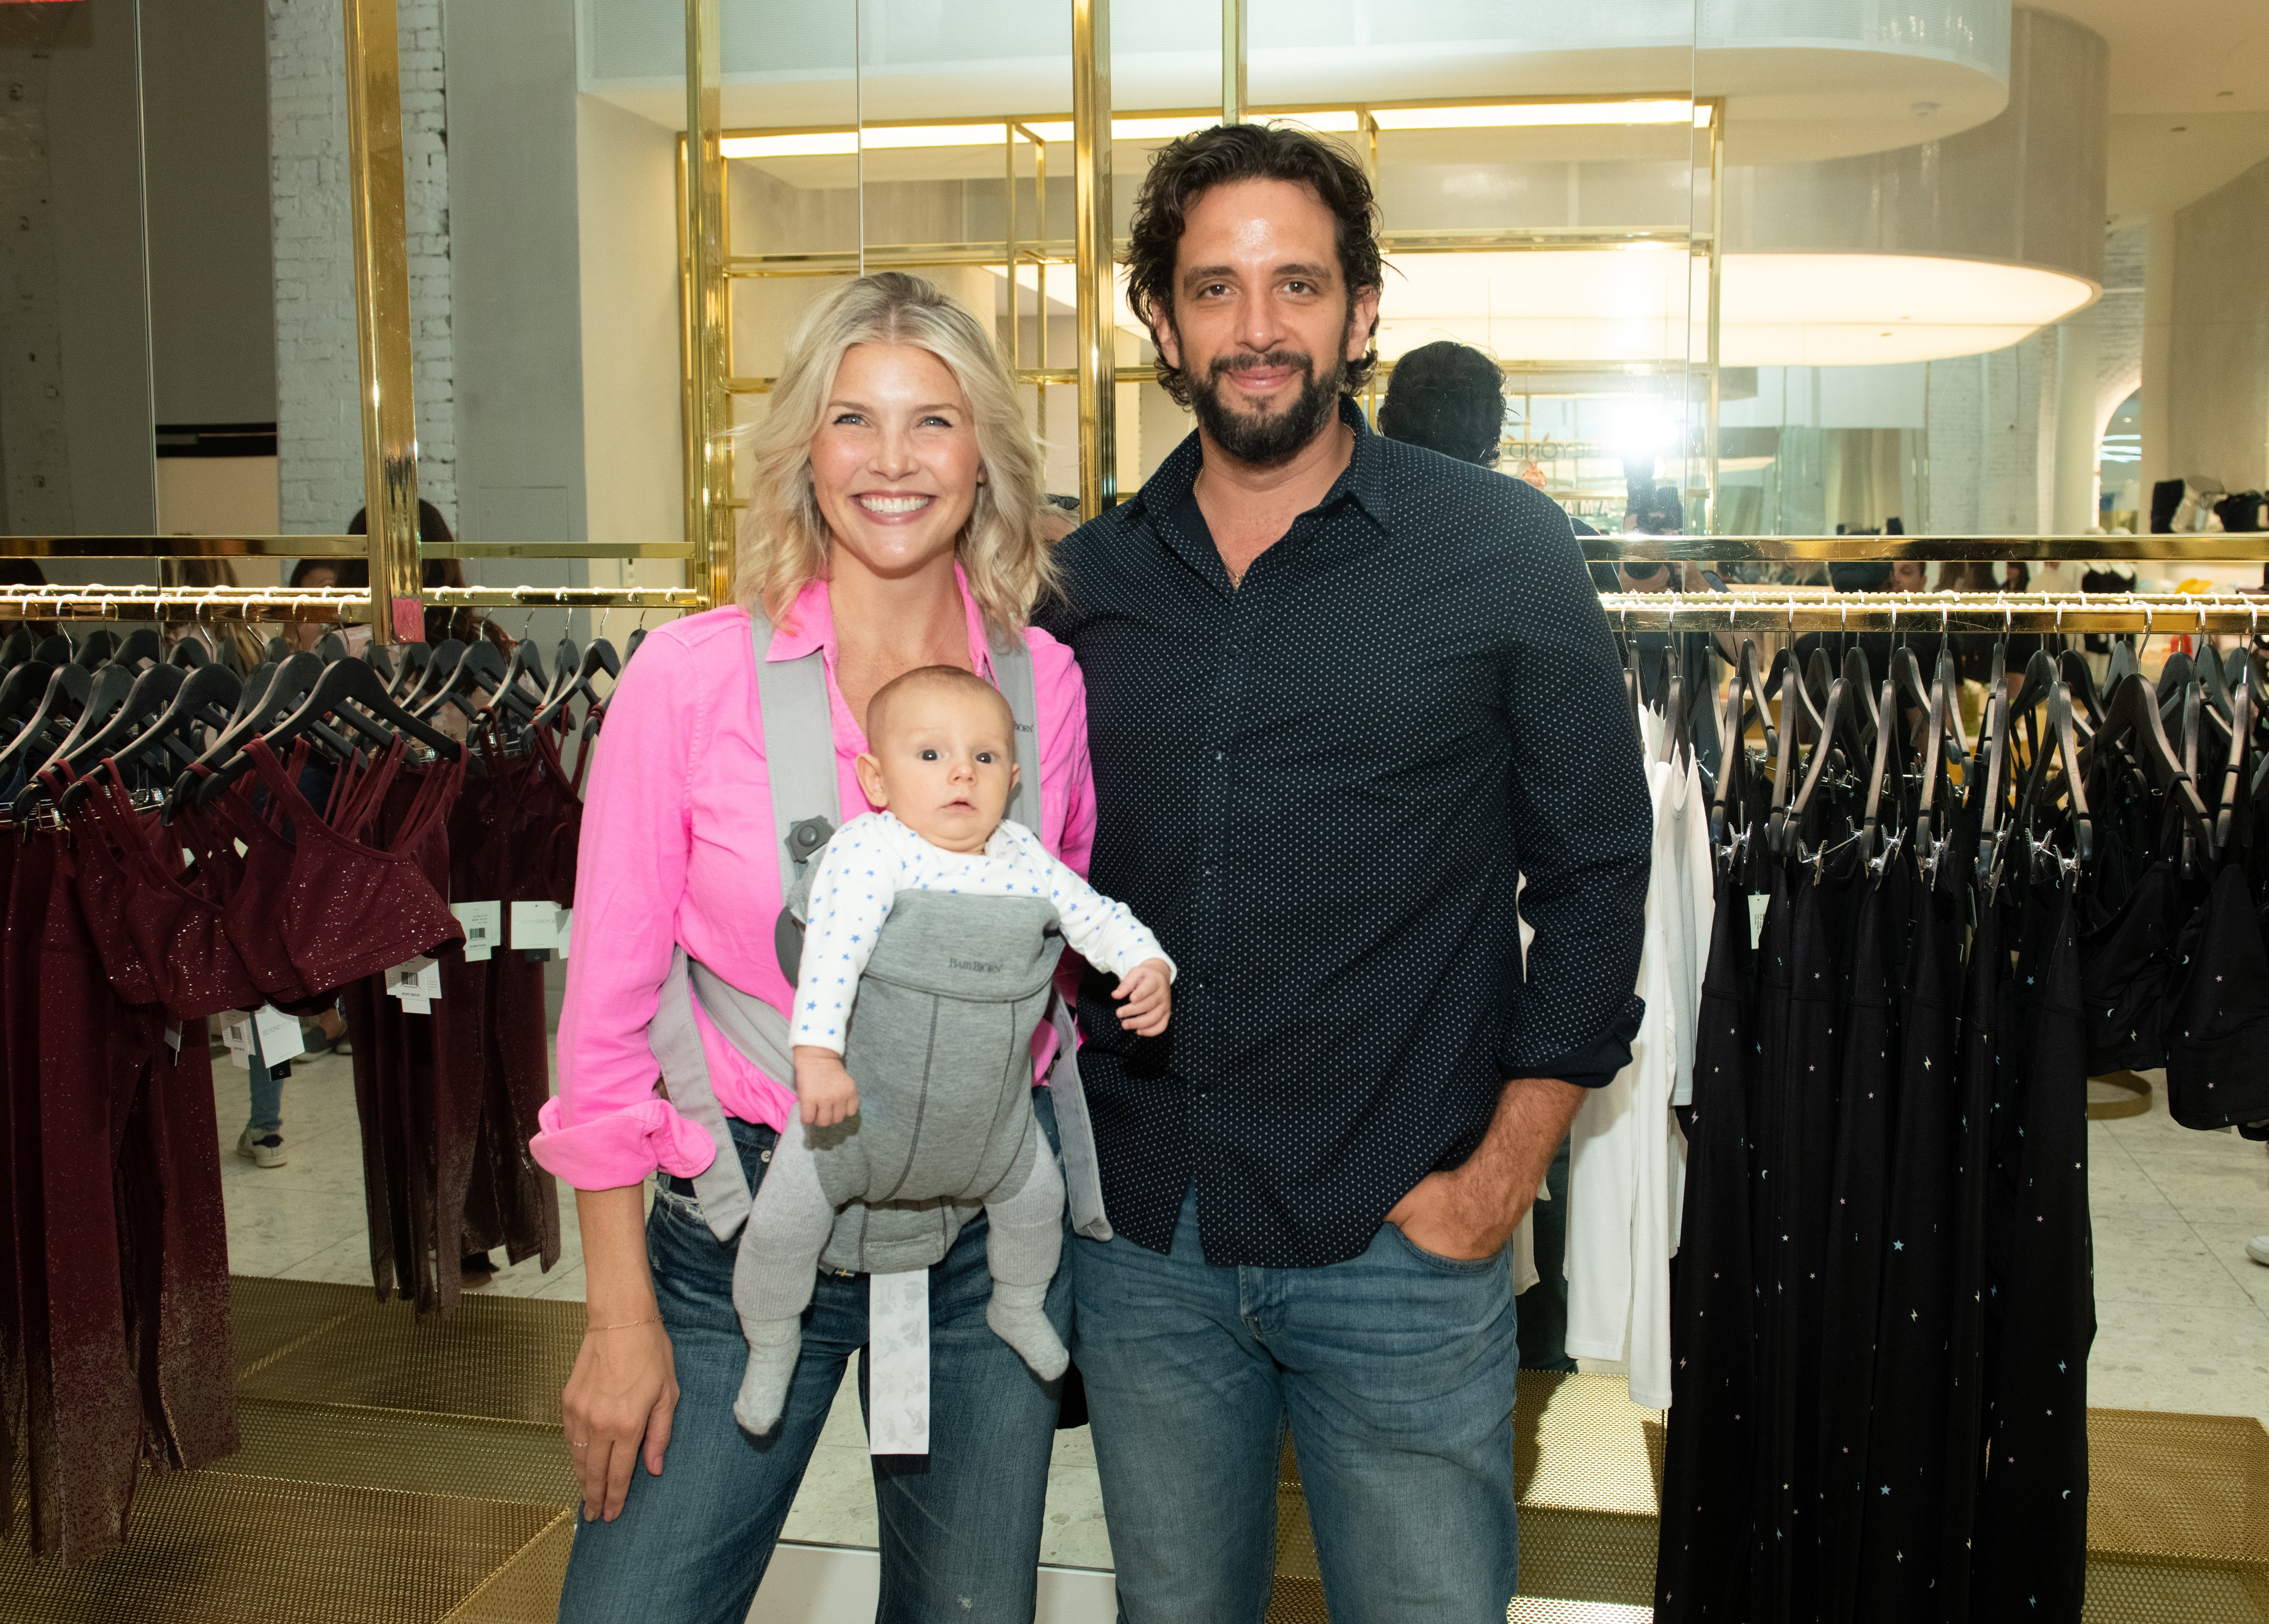 Amanda Kloots with husband Nick Cordero and son Elvis attend the Beyond Yoga x Amanda Kloots Collaboration Launch Event in New York City on August 27, 2019 | Photo: Getty Images